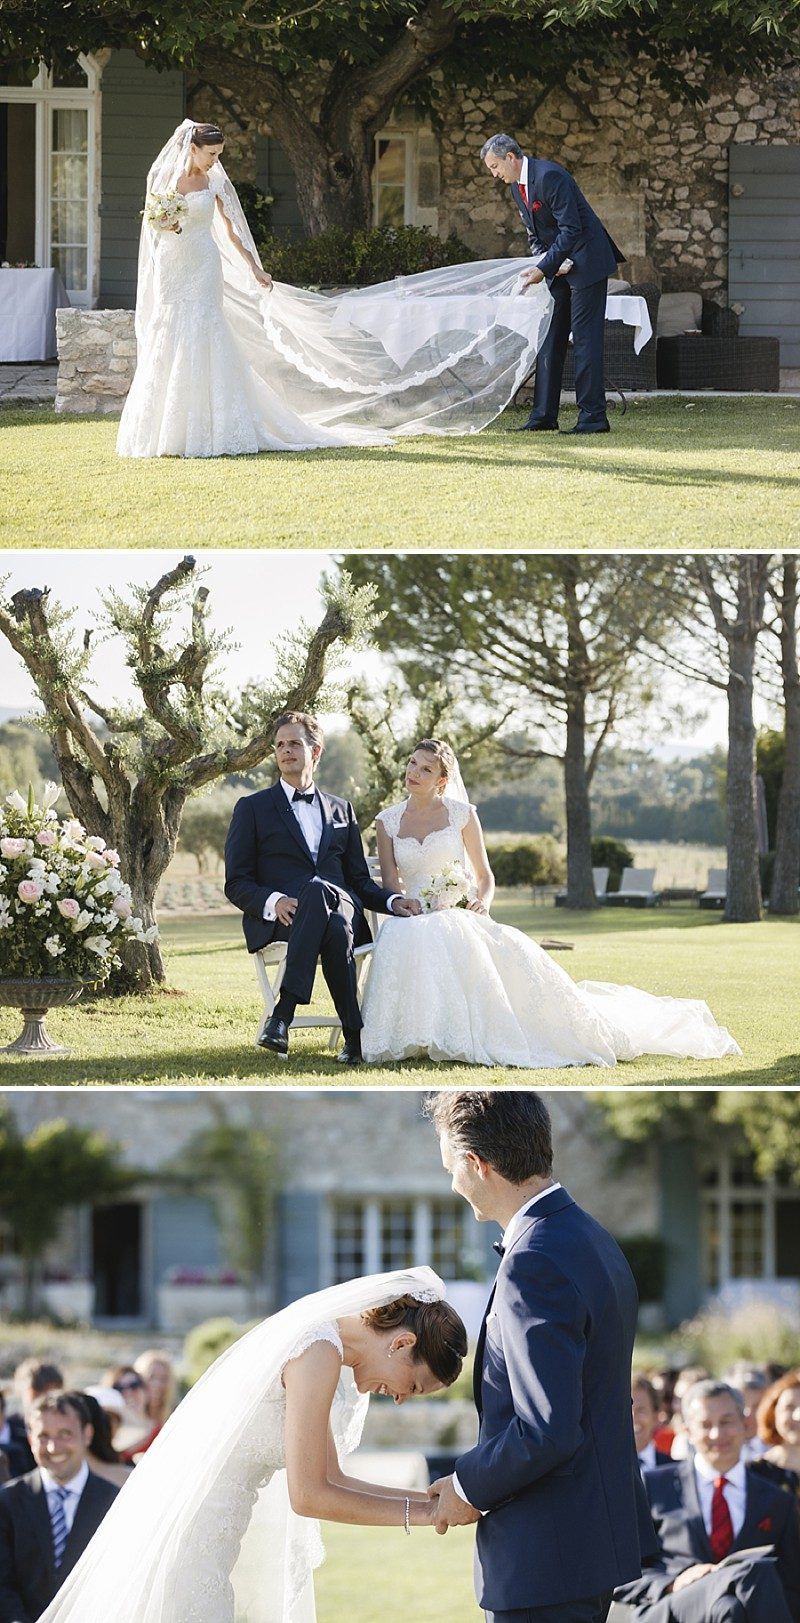 Elegant Wedding At Le Mas De La Rose Provence With Bride In Lace Fishtail Gown By Pronovias And Groom In Navy Armani Tuxedo With Images From Jo Hastings Wedding Photography 0005 La Sophistication Et Simplicité En Provence.